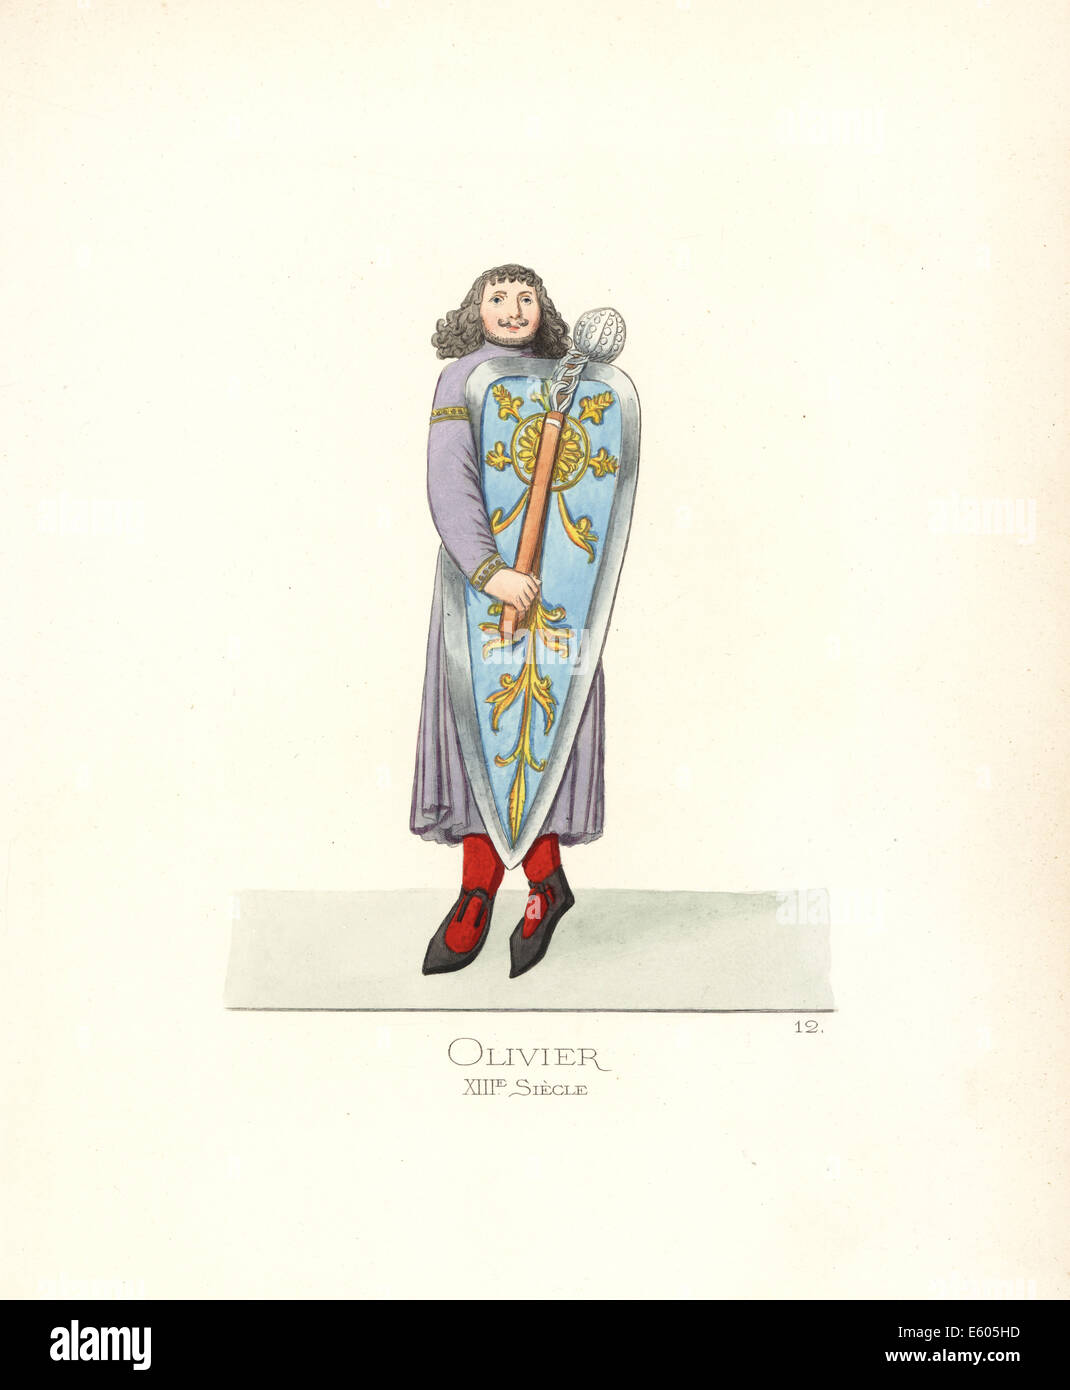 The paladin Oliver from the Song of Roland, 13th century. - Stock Image